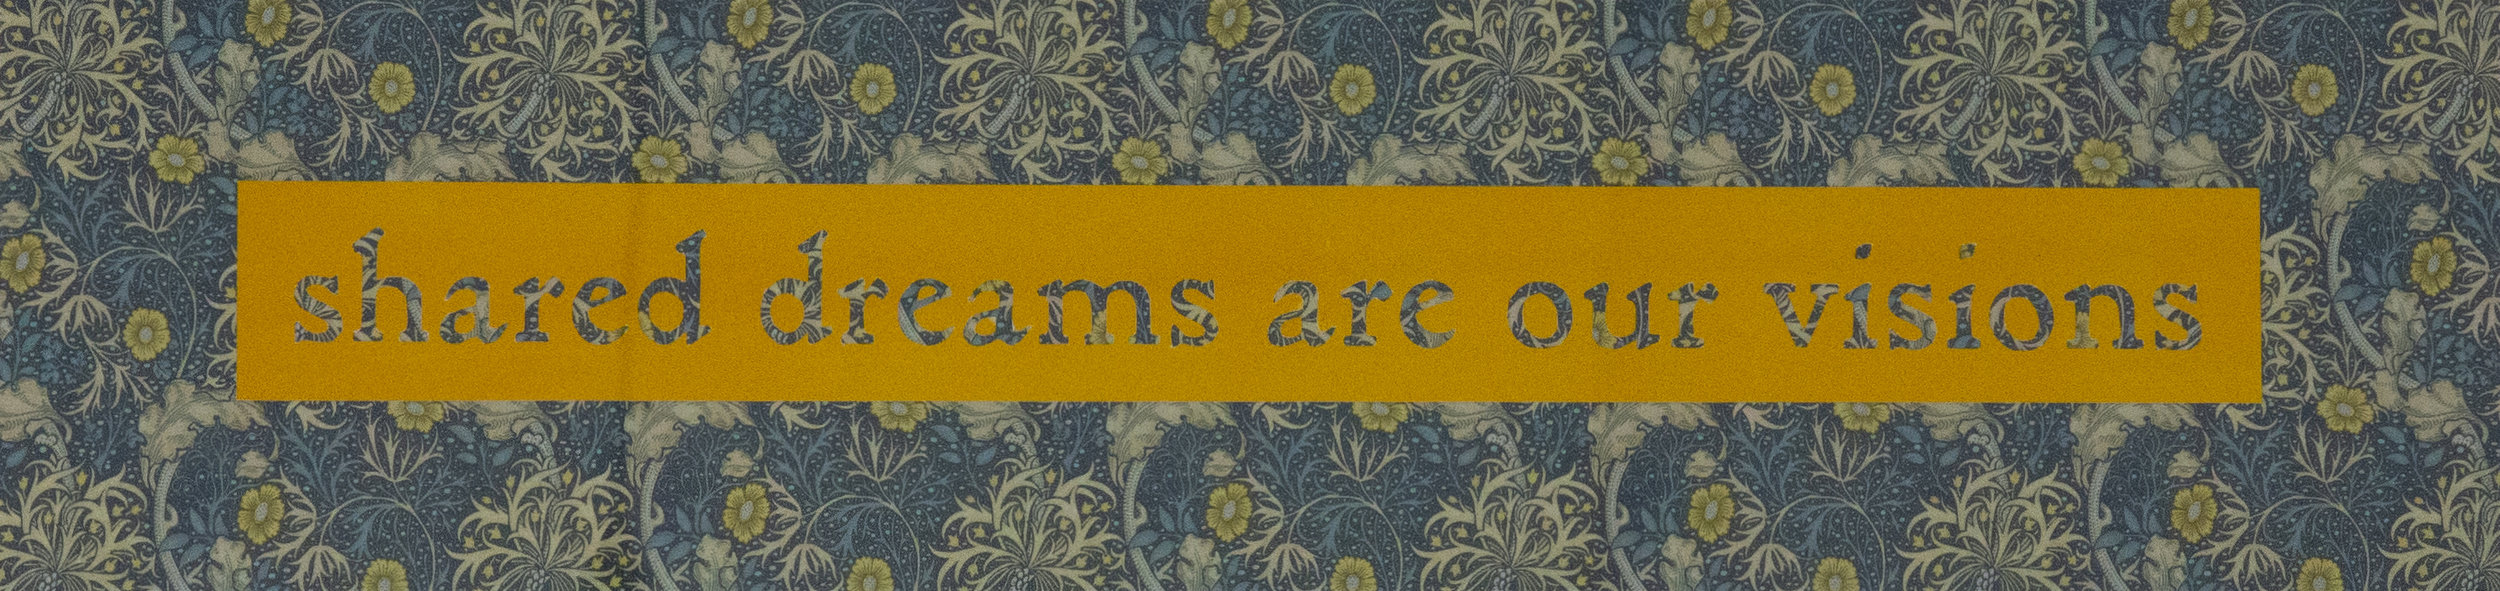 Shared Dreams are our Visions (2019) , Cat Drew, Stencil cut printed paper, 15 x 50cm, £50 unframed £90 framed